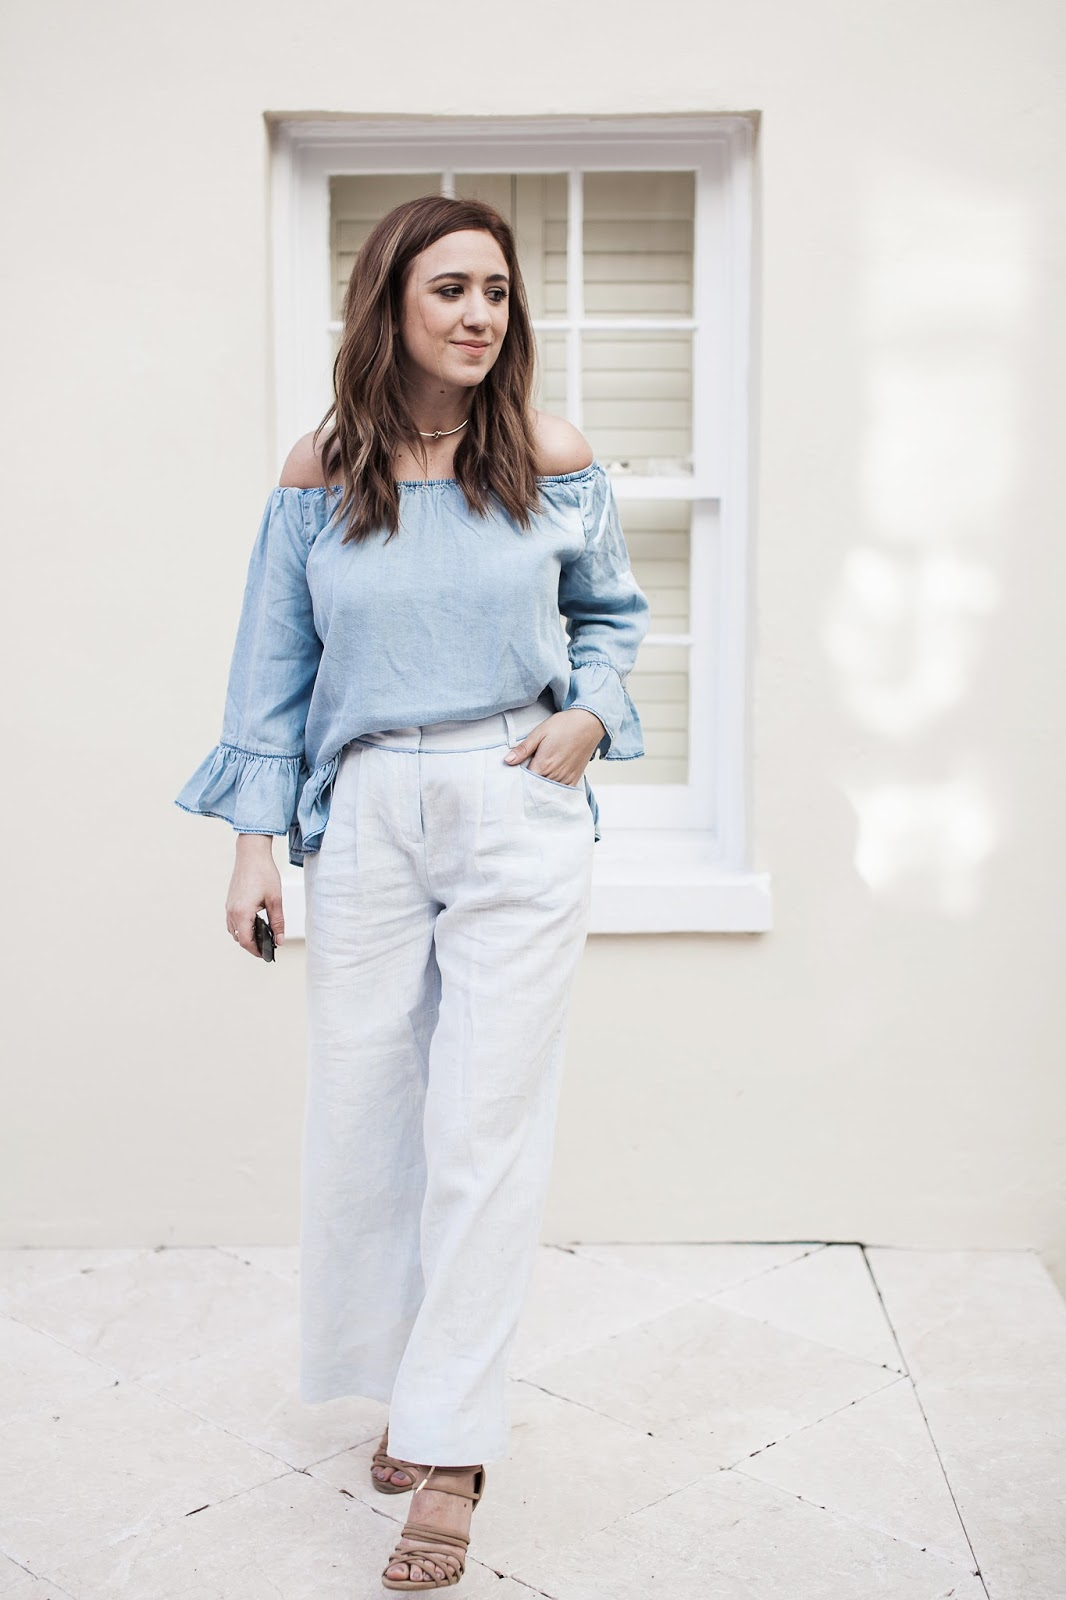 blogger, outfit, coachella, festival, inspiration, off the shoulder, top, sanctuary clothing, lafayette 148, blue, linen, lace up heels, coachella essentials, packing list, music festival